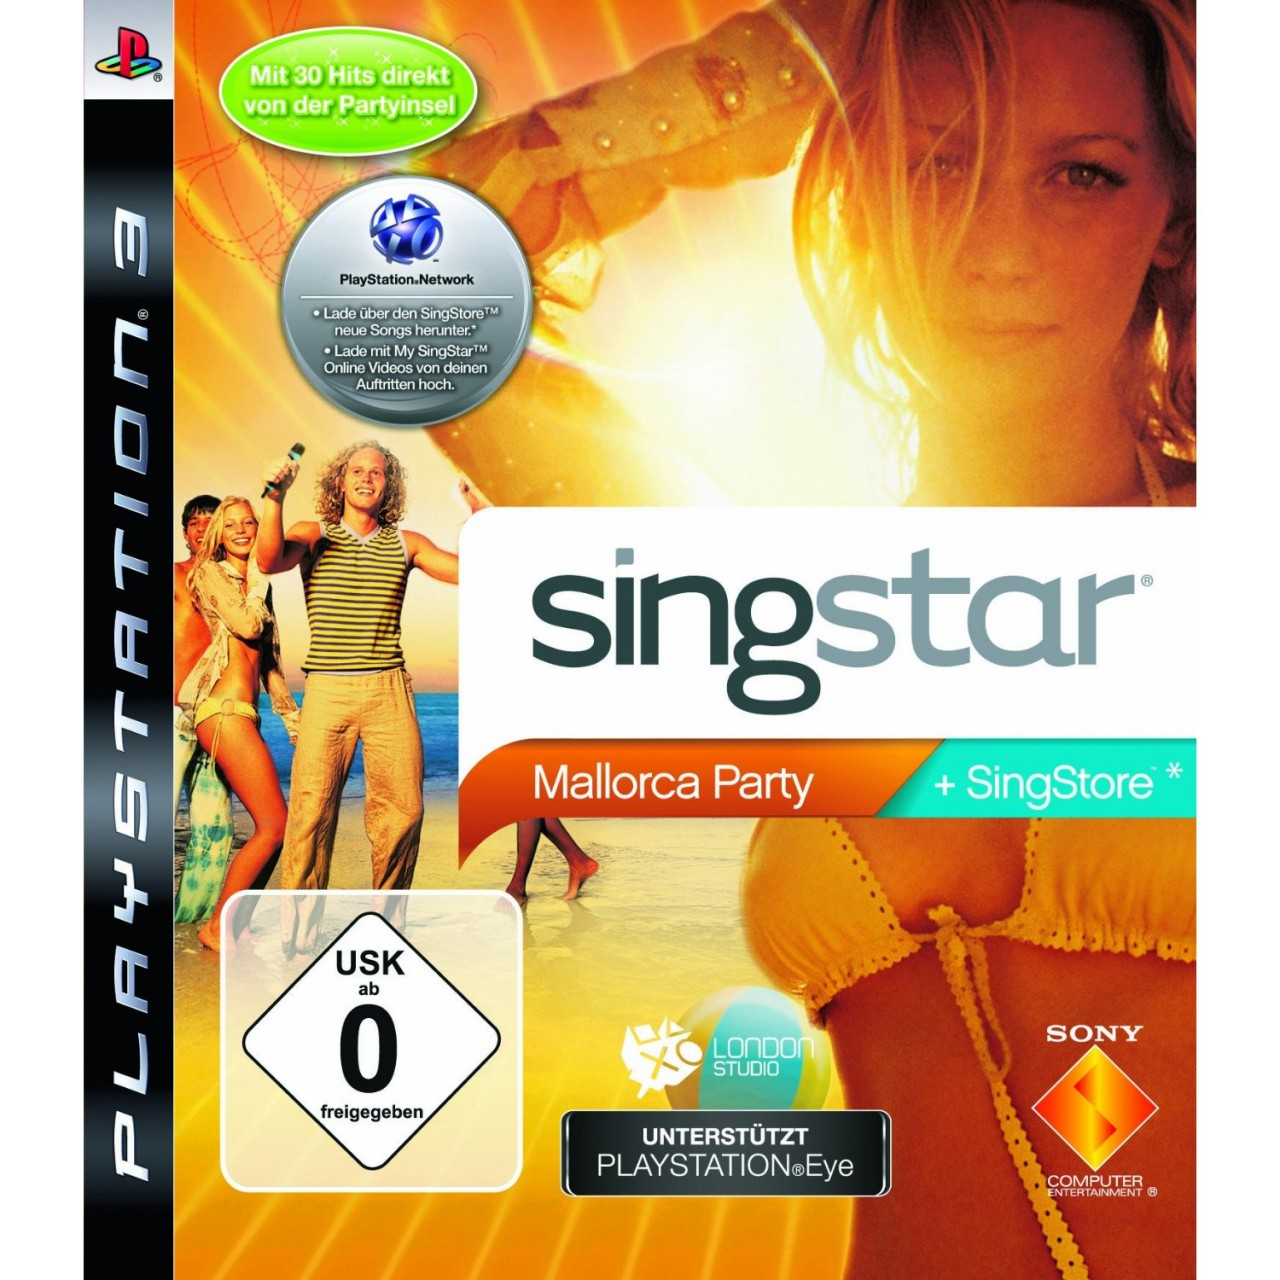 SingStar: Mallorca Party News